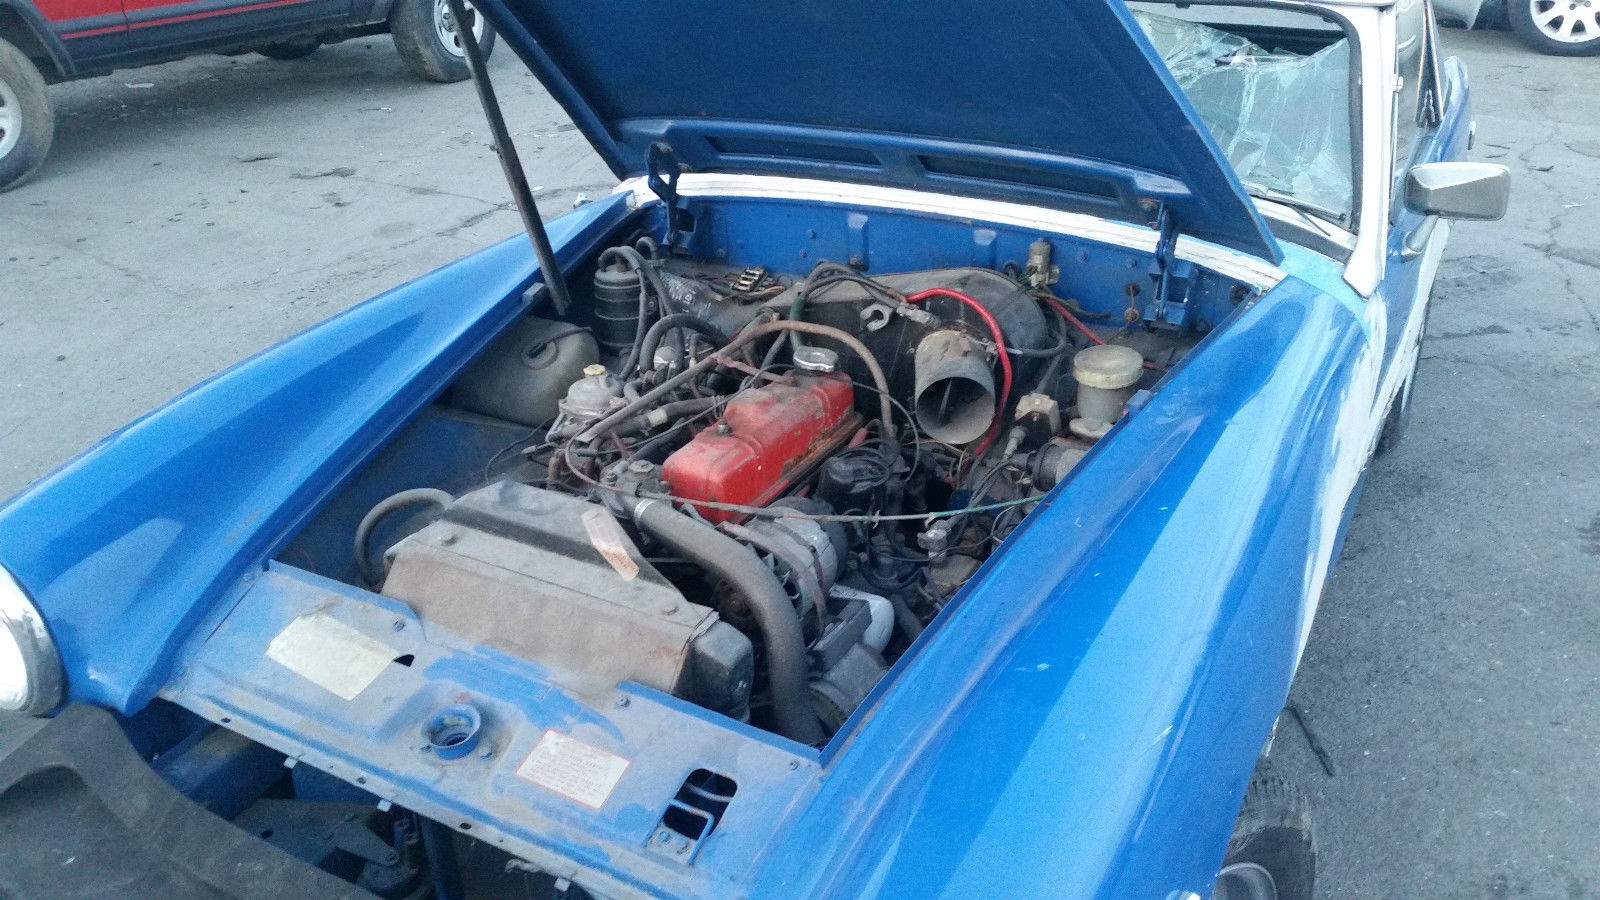 Has 4cylinder midget engine